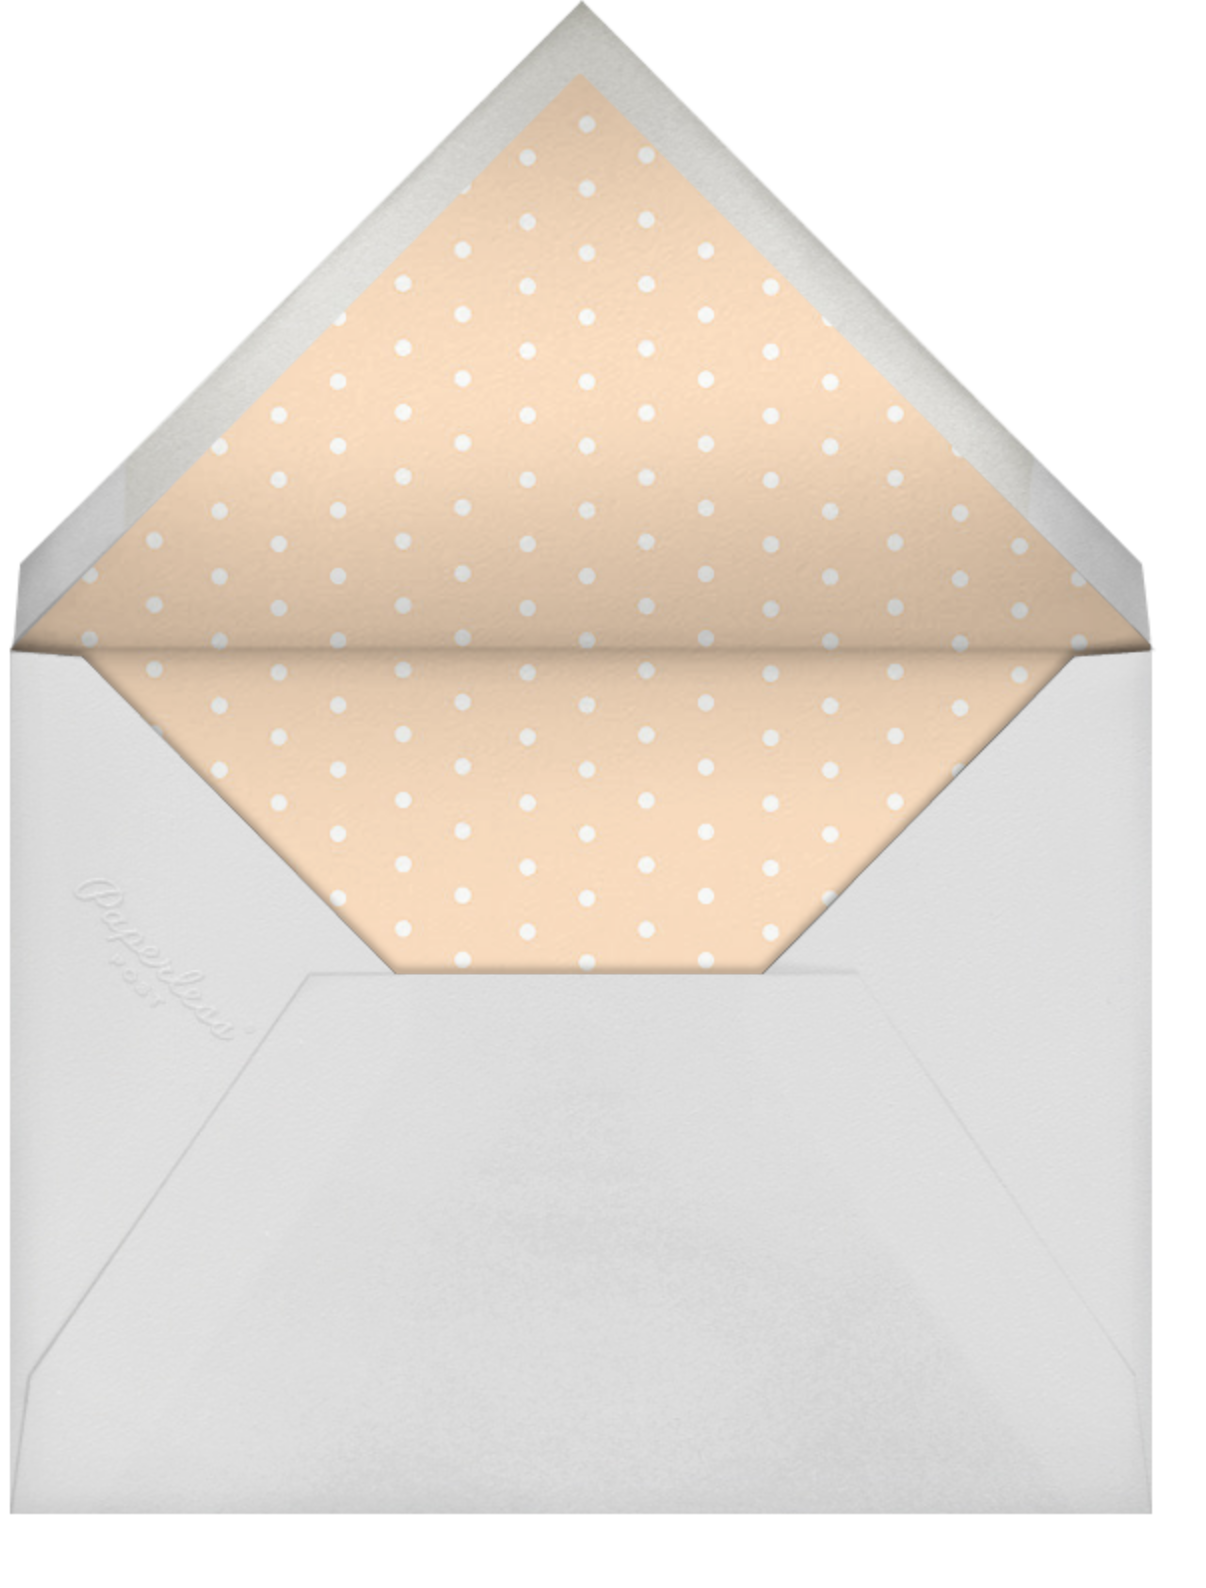 Destination: Vegas - Rifle Paper Co. - Bachelor party - envelope back